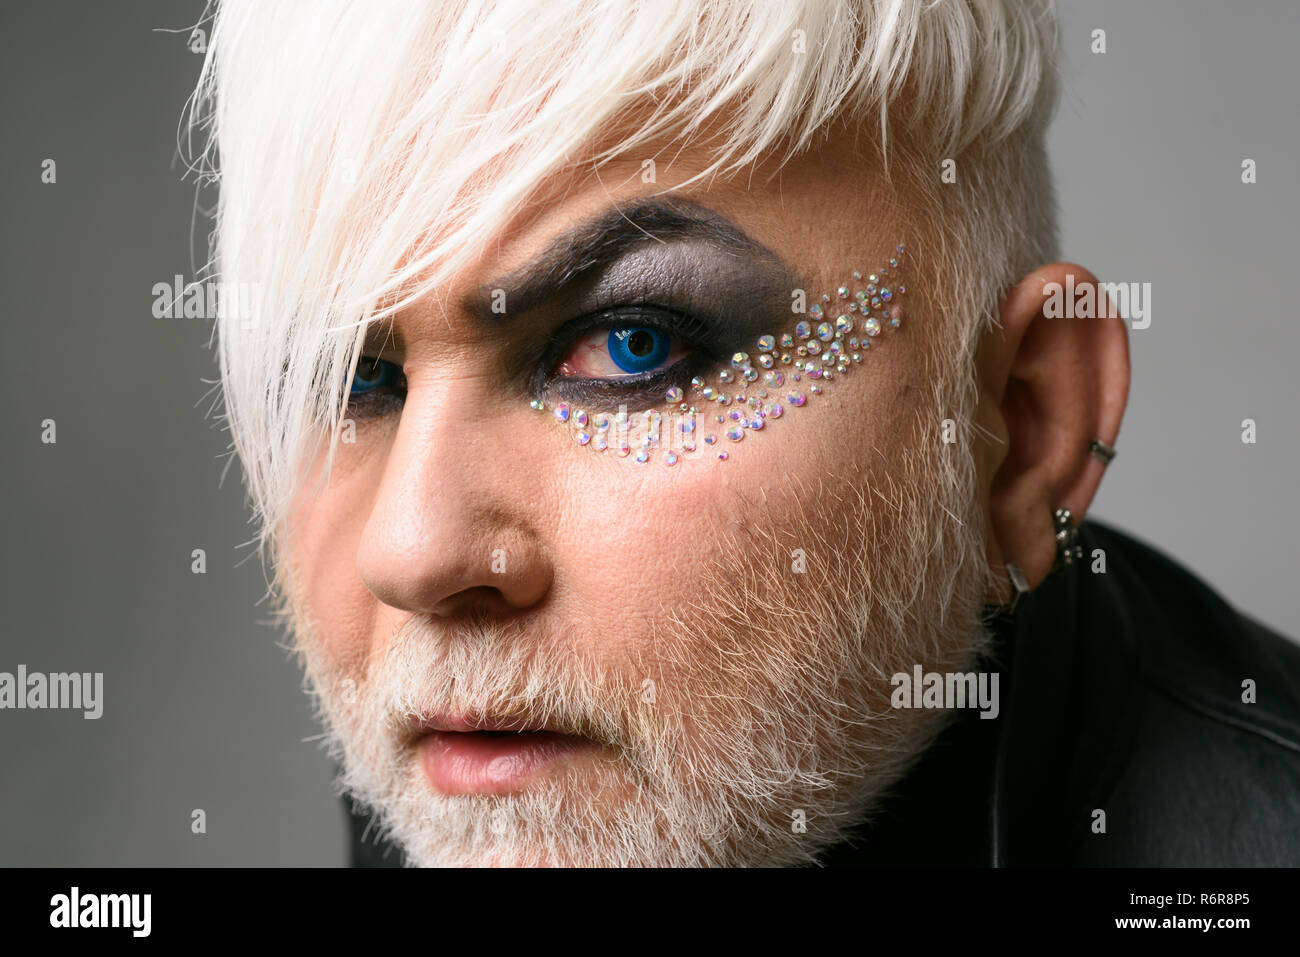 Bisexual by nature, queer by choice. Exotic hipster man with fashion hairstyle. Male makeup look. Bearded man with male makeup. Transgender person.Hipster fashion style. Support transgender rights - Stock Image